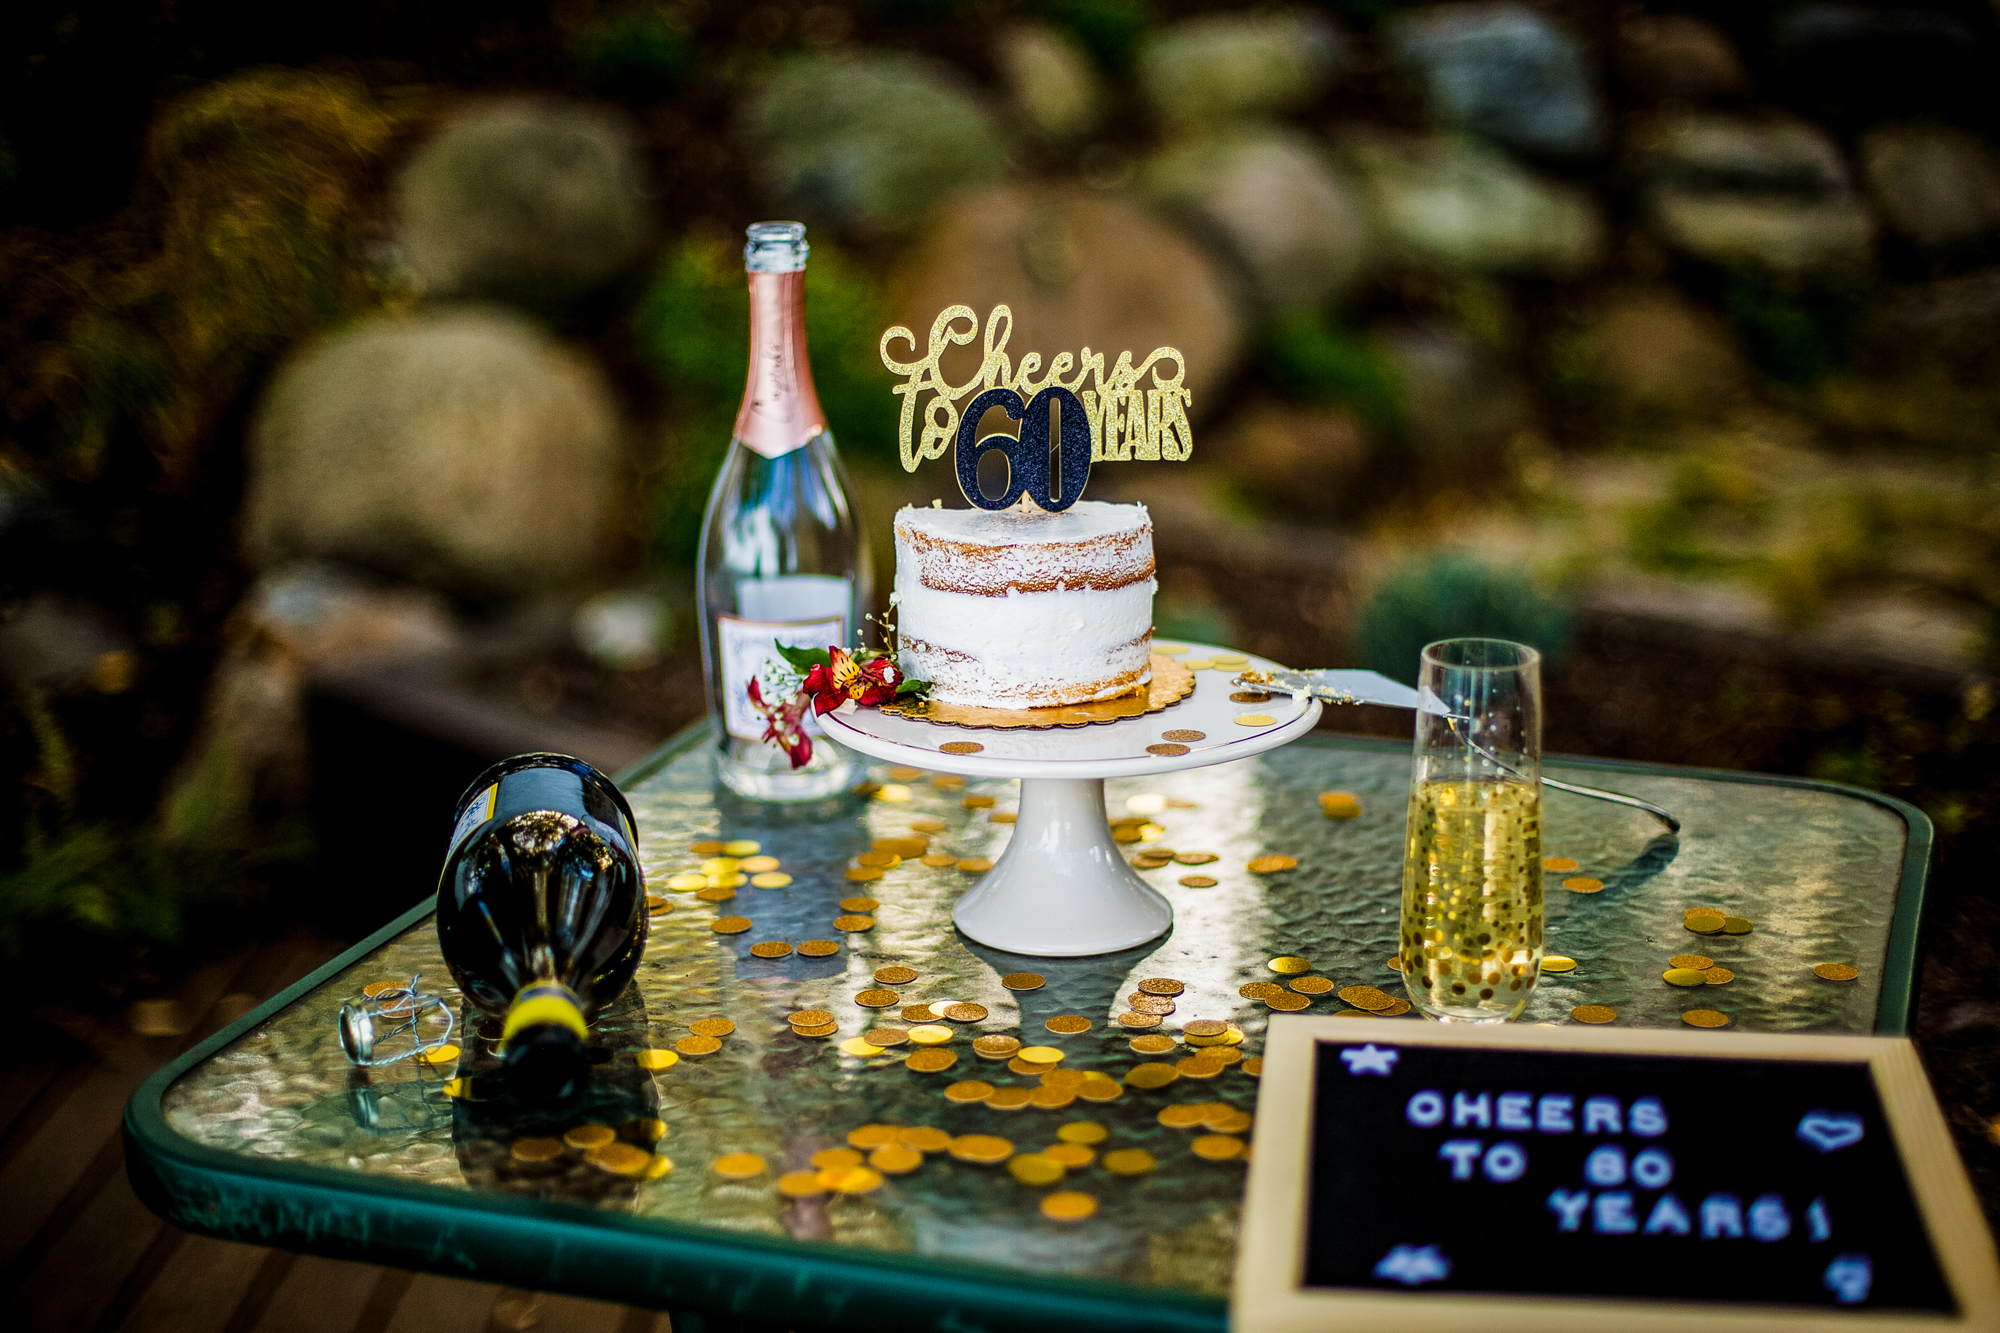 Empty champagne bottles and cake for 60th birthday celebration in North East PA